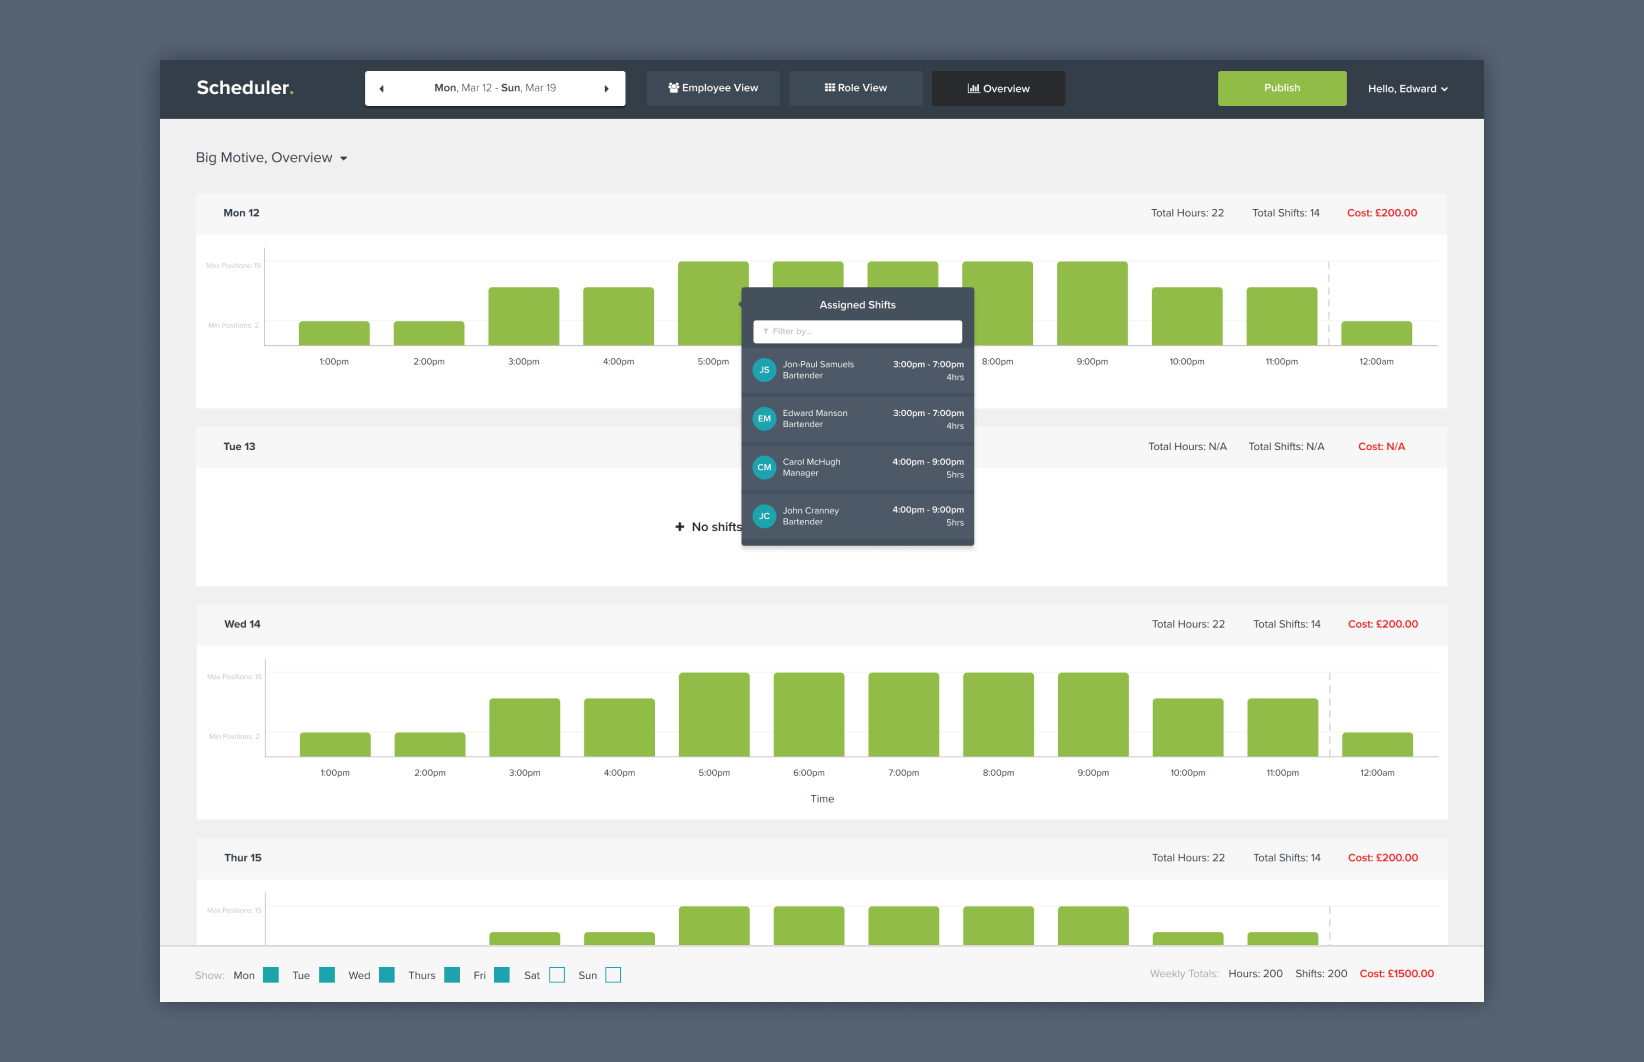 Scheduler - Time overview dashboard interface